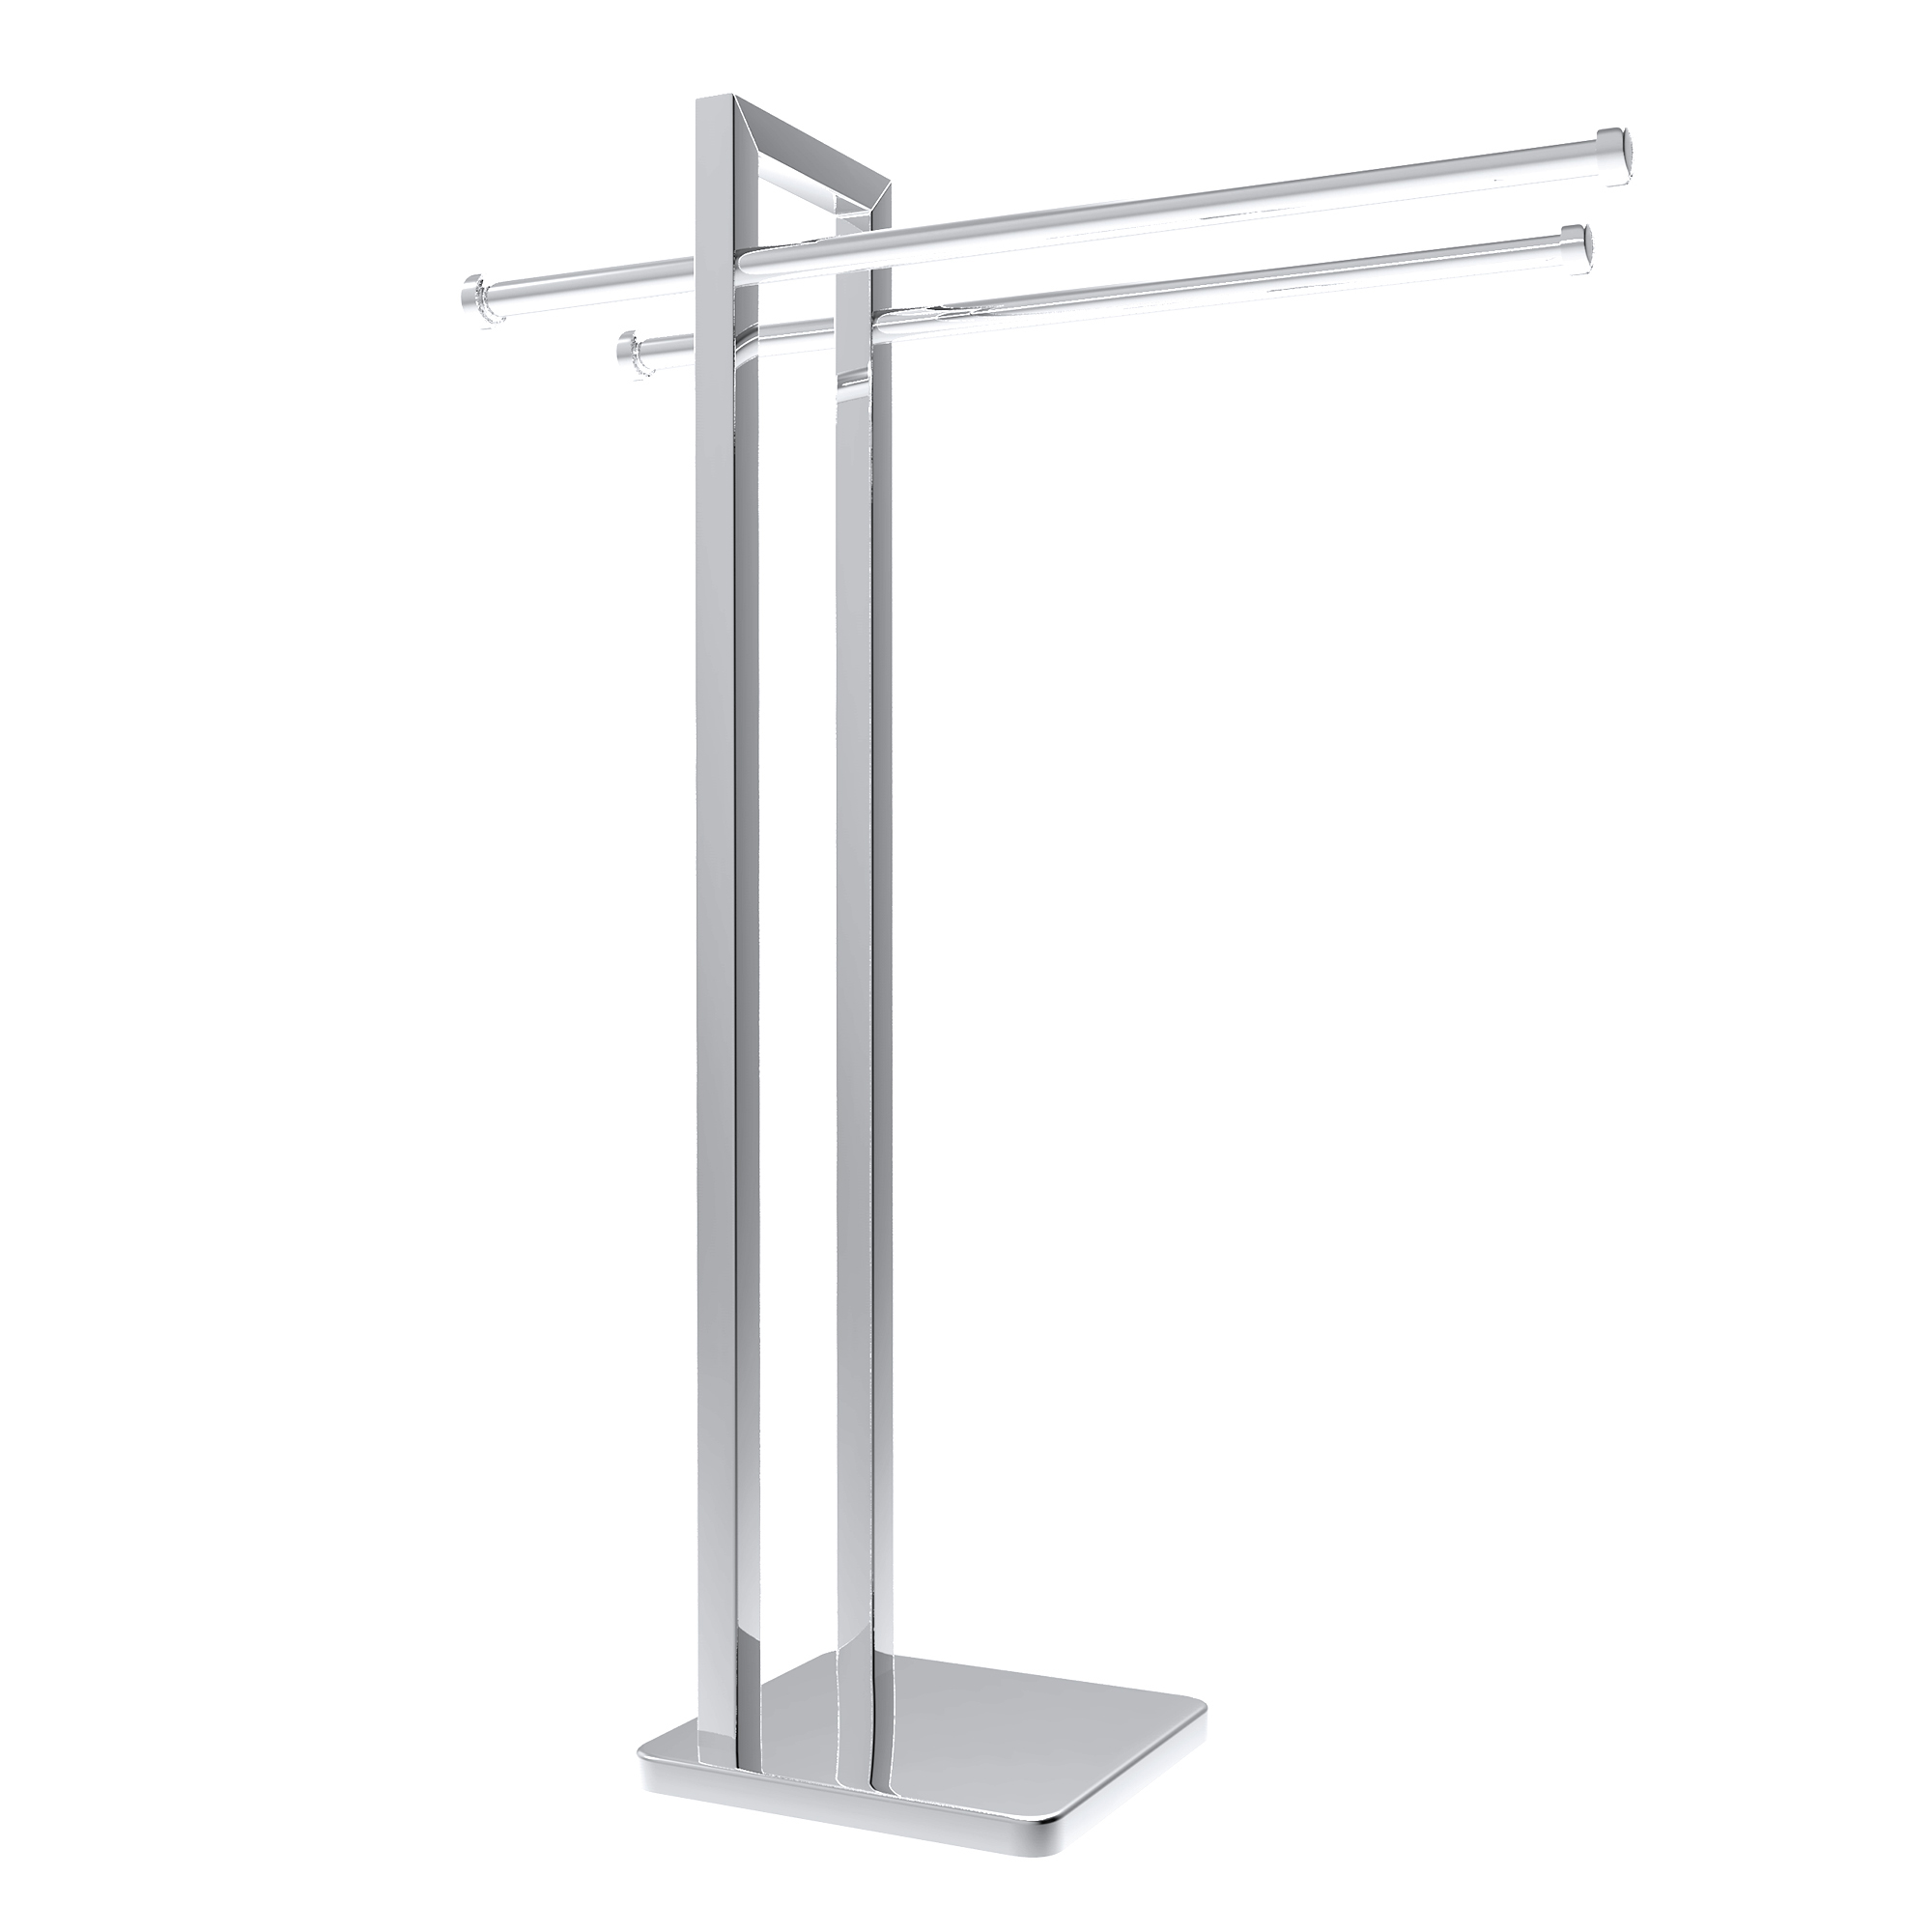 Freestanding Towel Rack   Stainless Steel Holder Stand For Towels With  Double Hanging Bar For Bathroom